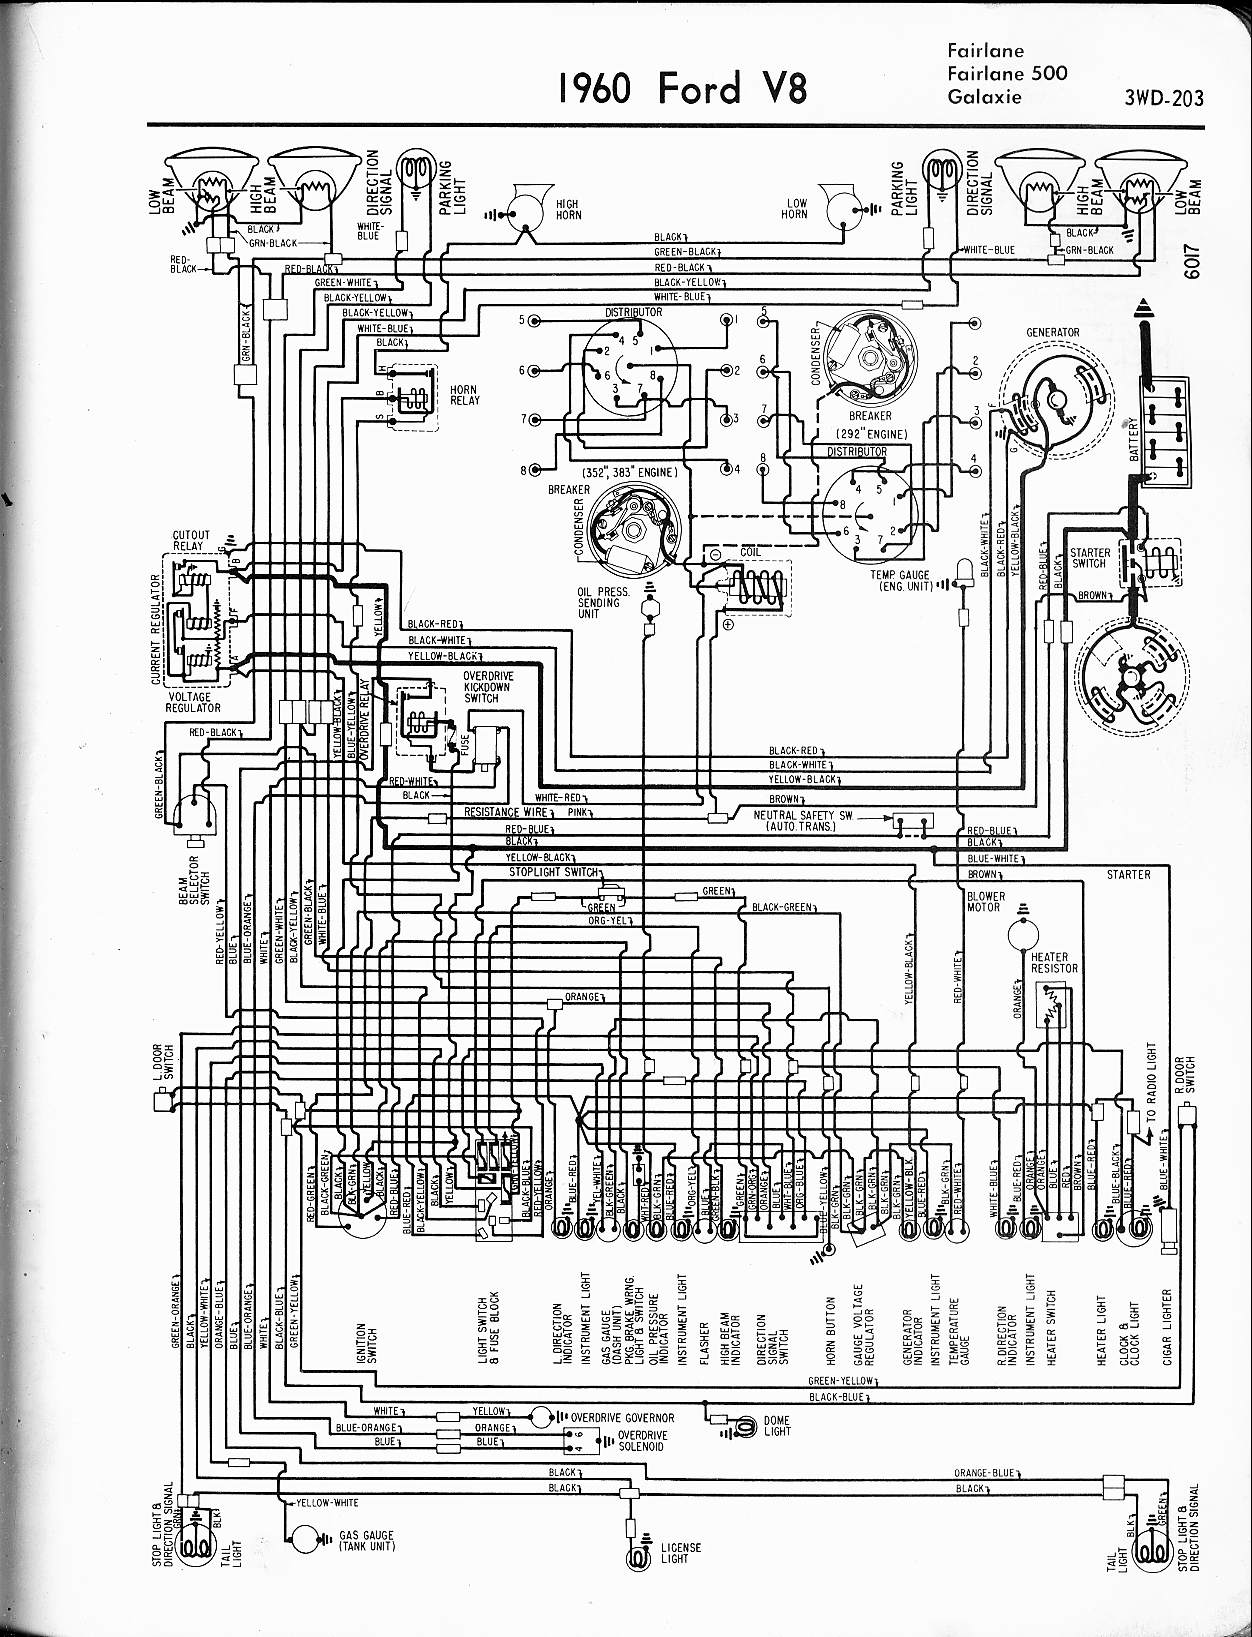 57 65 Ford Wiring Diagrams Jeep Distributor Diagram For A 1965 1960 V8 Fairlane 500 Galaxie